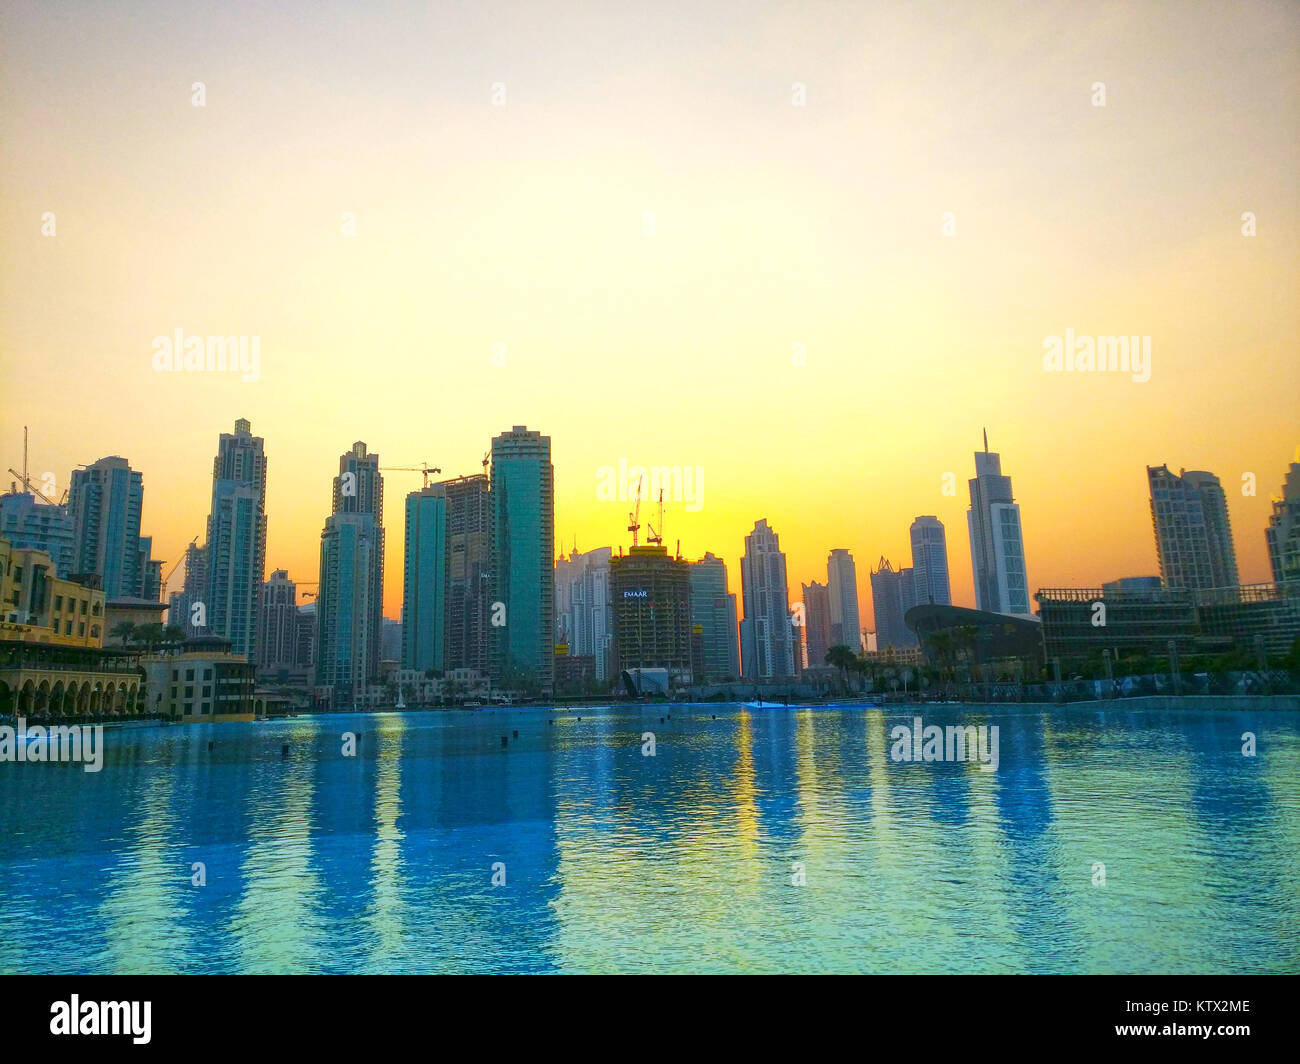 A view of the buildings in Dubai from the Dubai Fountain near the Burj Khalifa - Stock Image